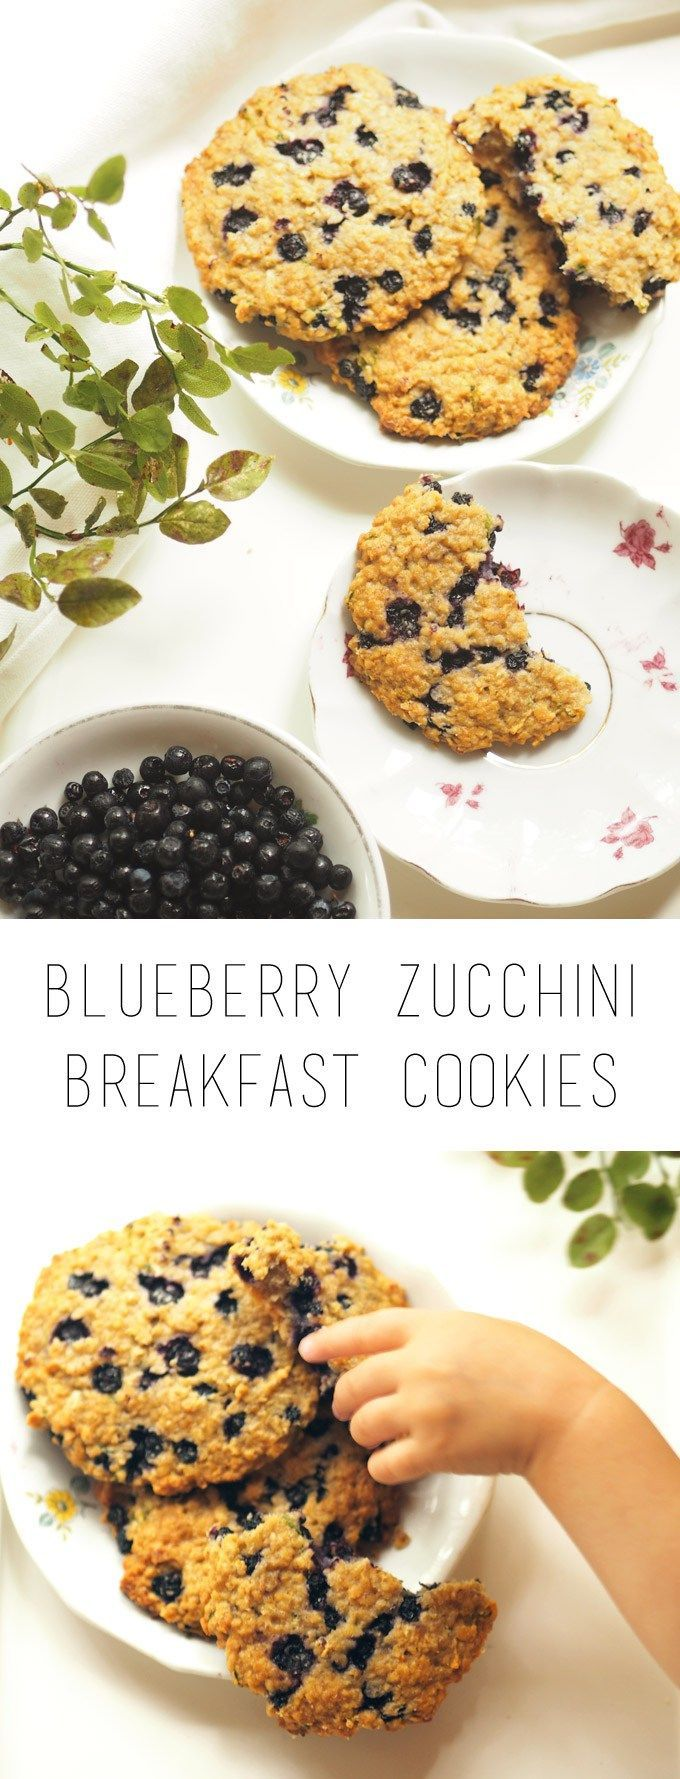 Healthy & kid-friendly blueberry zucchini cookies. Yum! I should try this recipe with my kids!